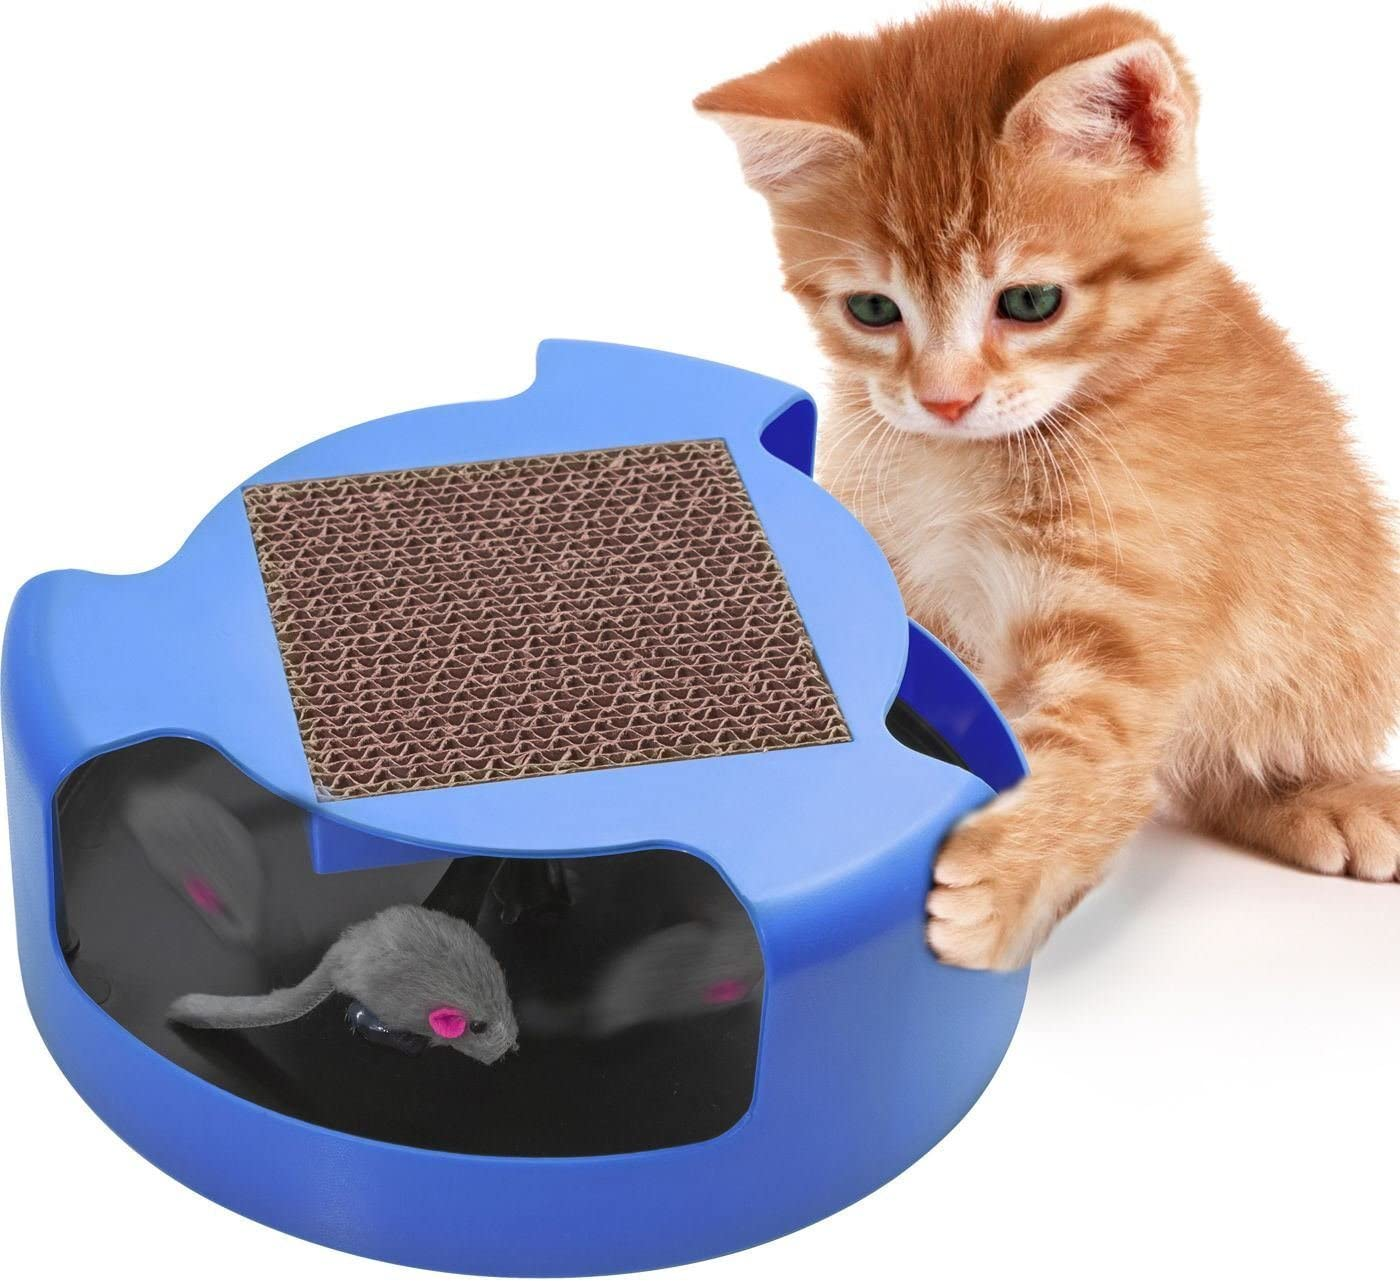 Magnusdeal Superlatite Cat Mouse Play Toy with A Post Scratching Brand new Pad for Pup